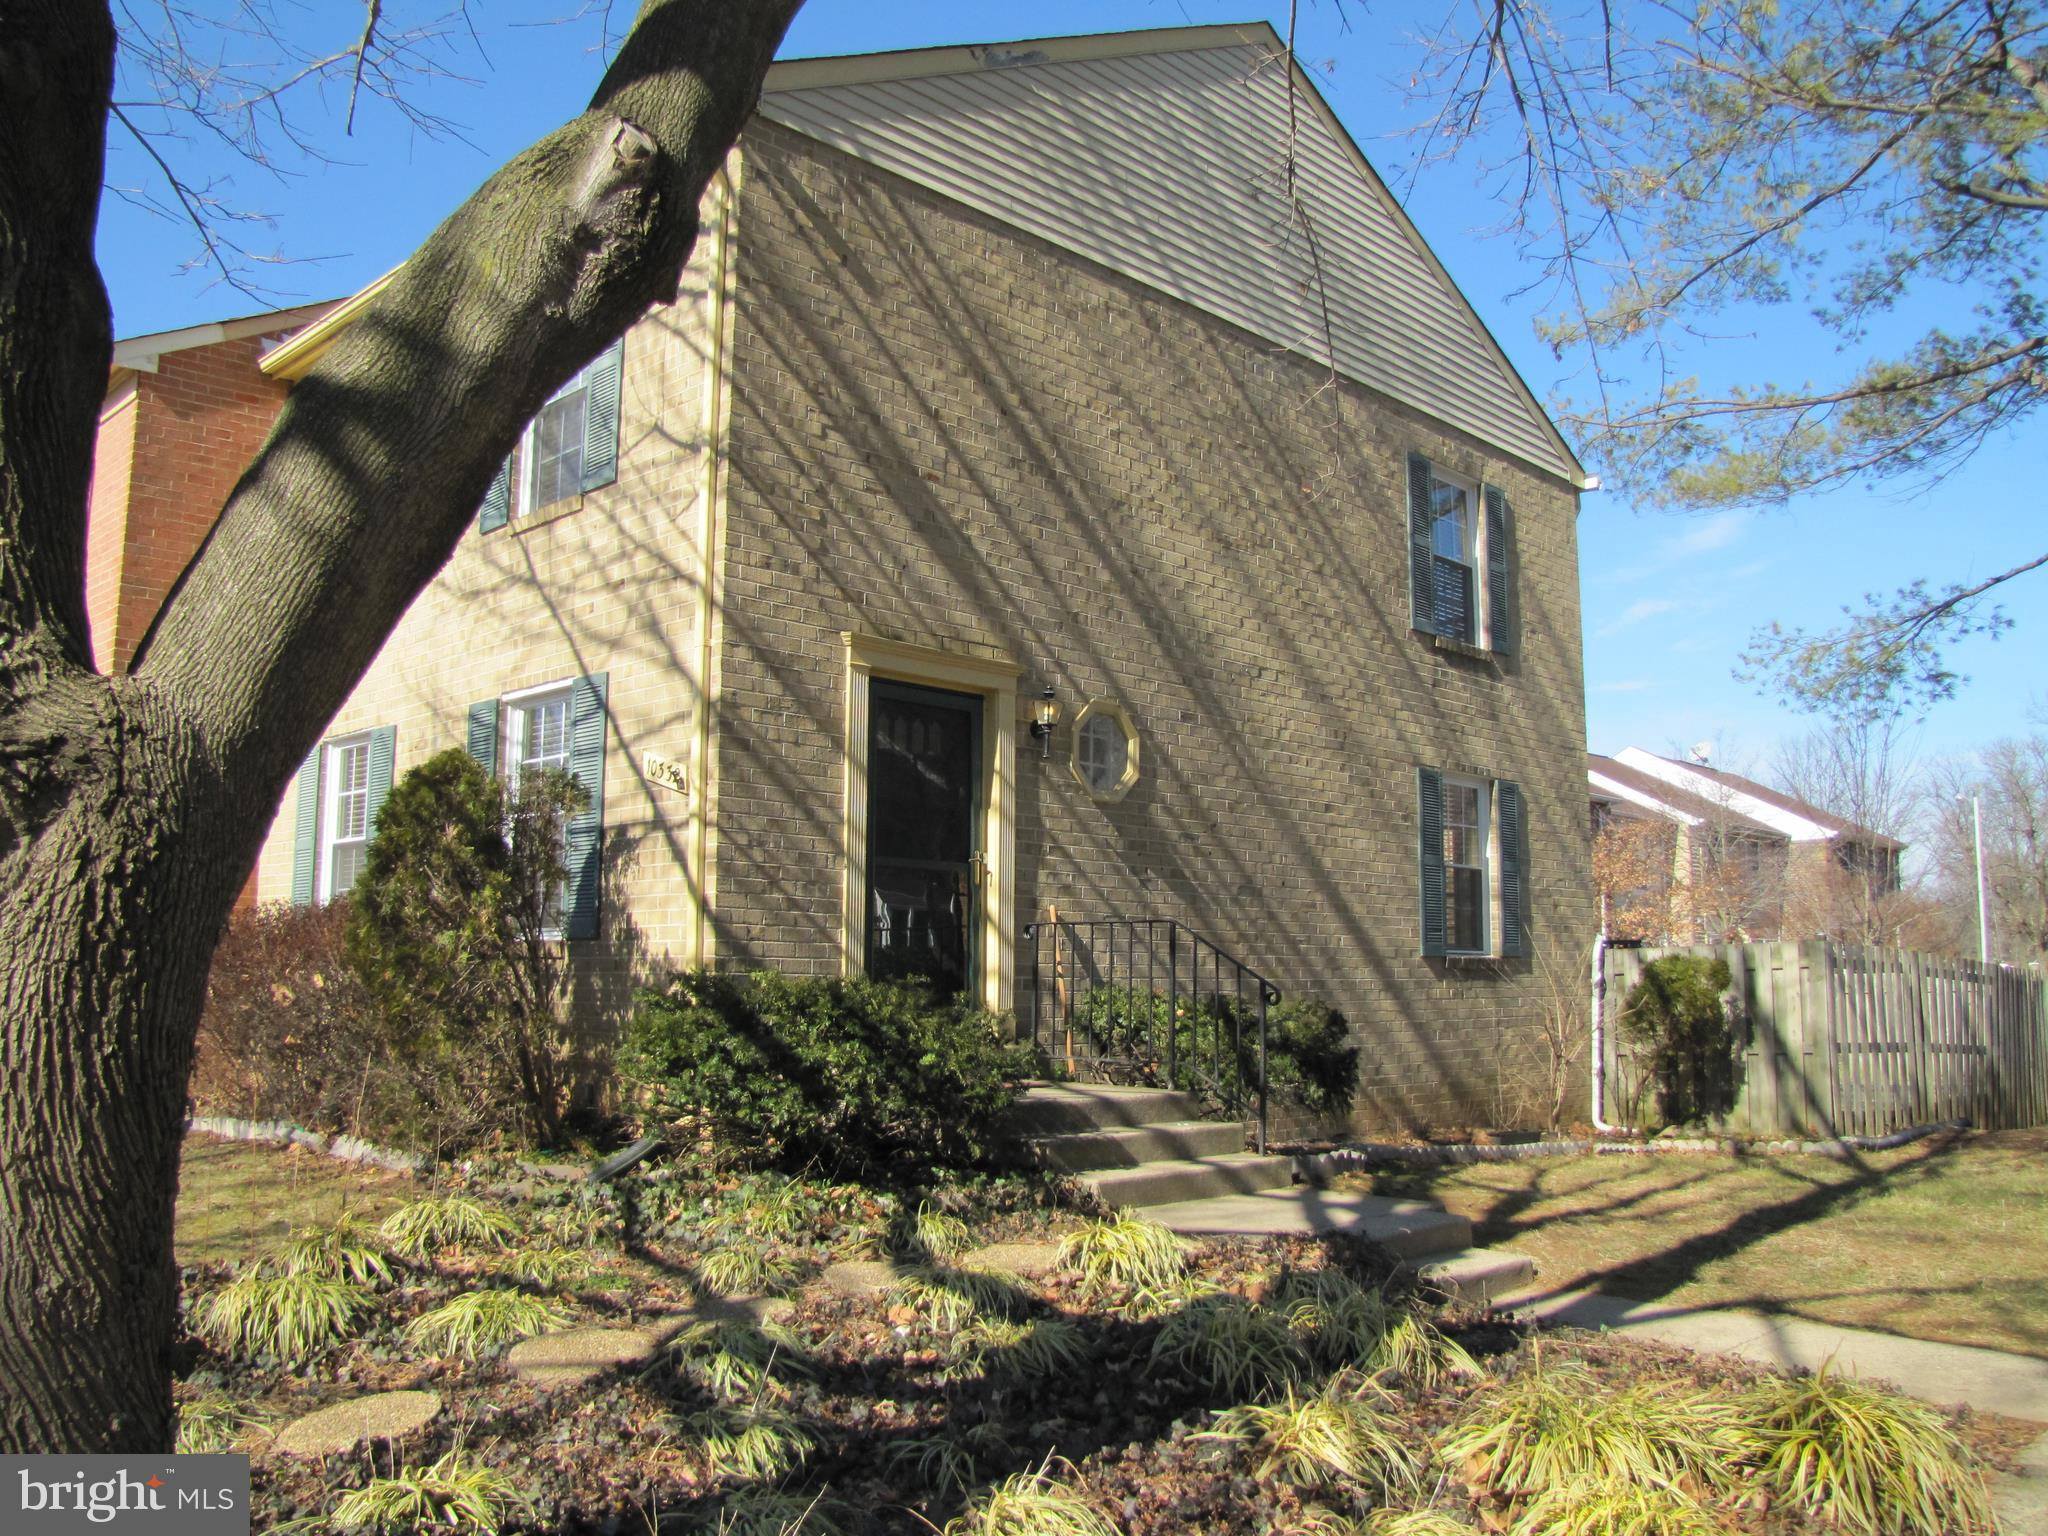 BEAUTIFUL, IMMACULATE UPDATED 3 BEDROOM, 2 FULL & 2 HALF BATH, BRICK END UNIT TH IN SOUGHT-AFTEROAKTON**CLOSE TO I-66, METRO, RT 123 & SHOPPING**FIREPLACE ON MAIN LEVEL**LARGE EAT-IN KITCHEN**LARGE FENCED END LOT WITH EXPANSIVE DECK**GOOD CREDIT, LANDLORD REFS & 1 OR 2 INCOMES OF AT LEAST $93K/YR REQ'D**AVAIL SHORT TERM FOR $2275